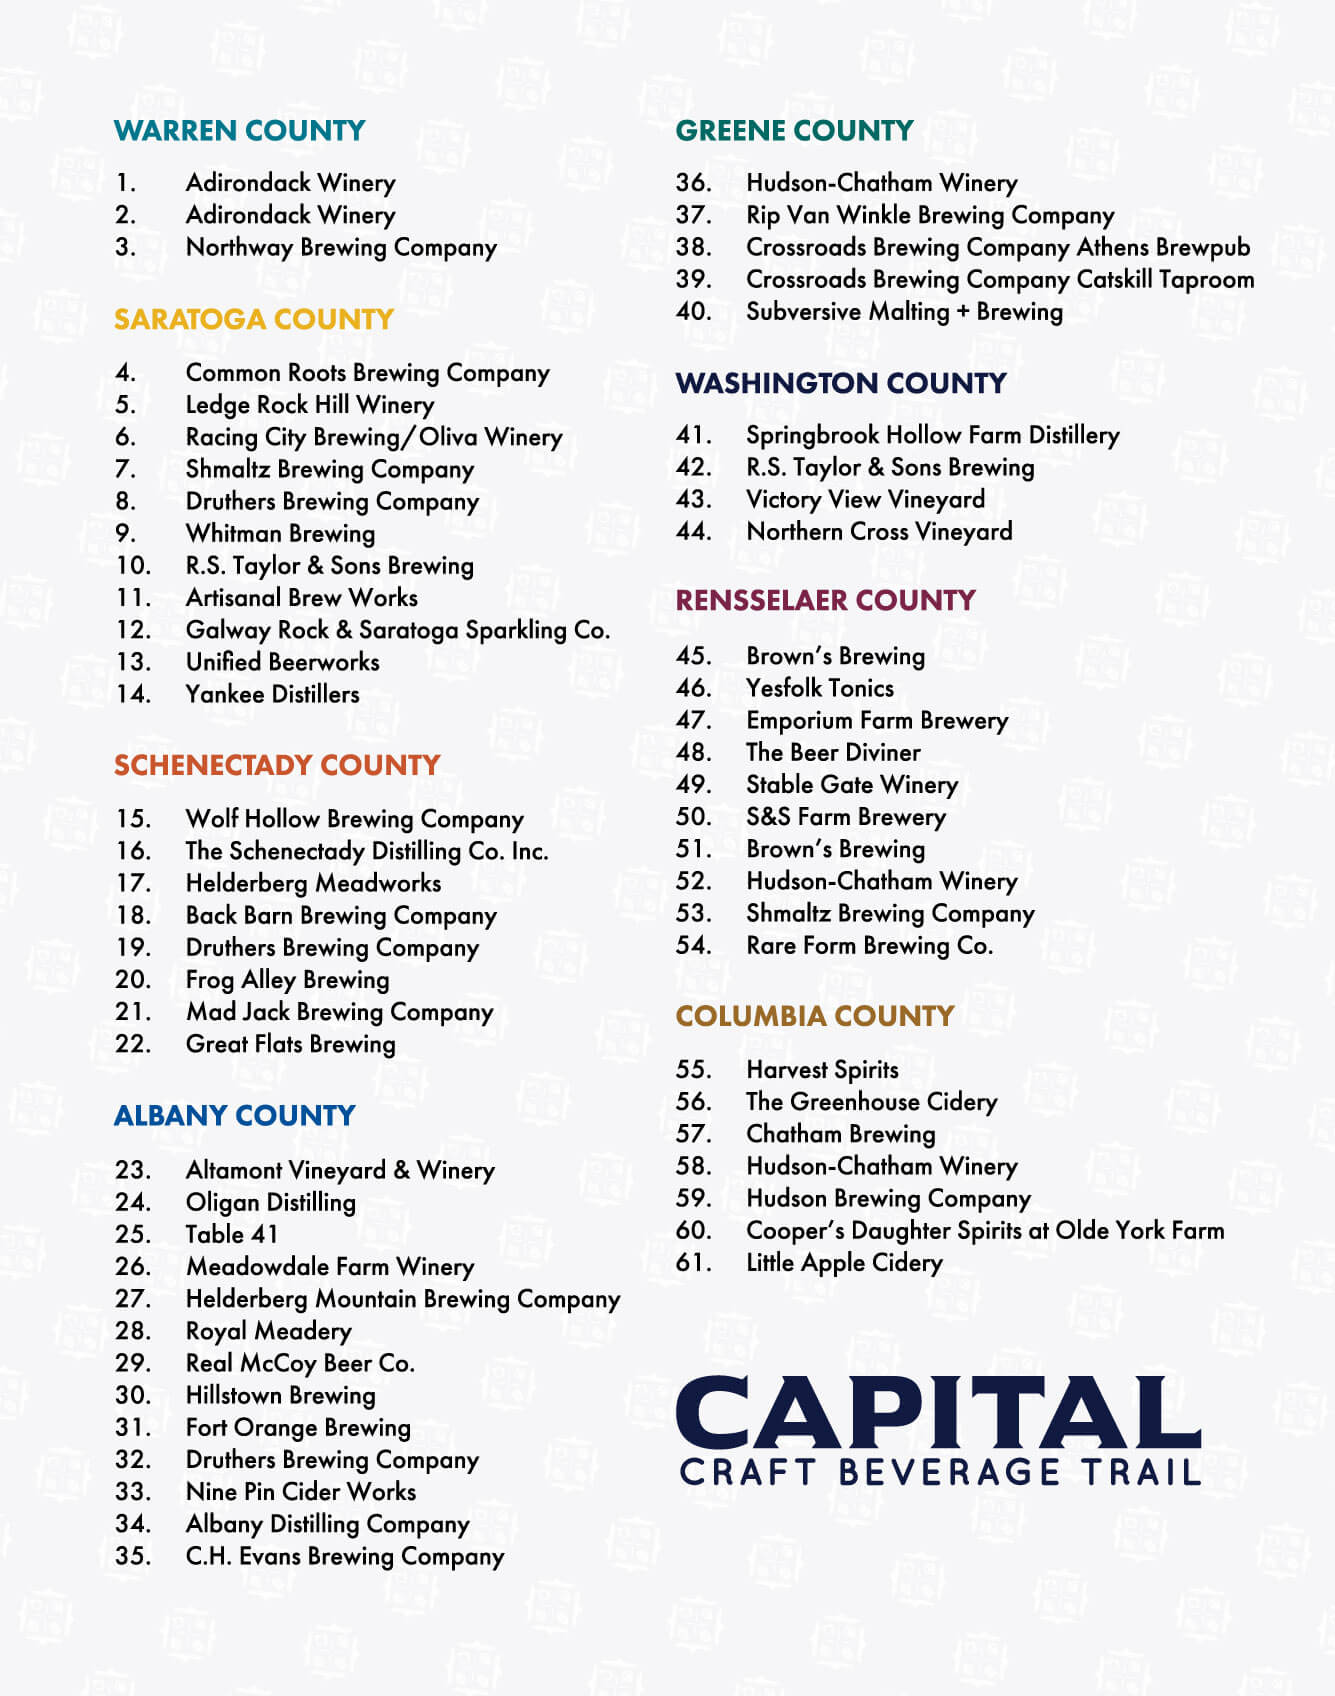 Capital Craft Beverage Trail Map List of Producers for 2020